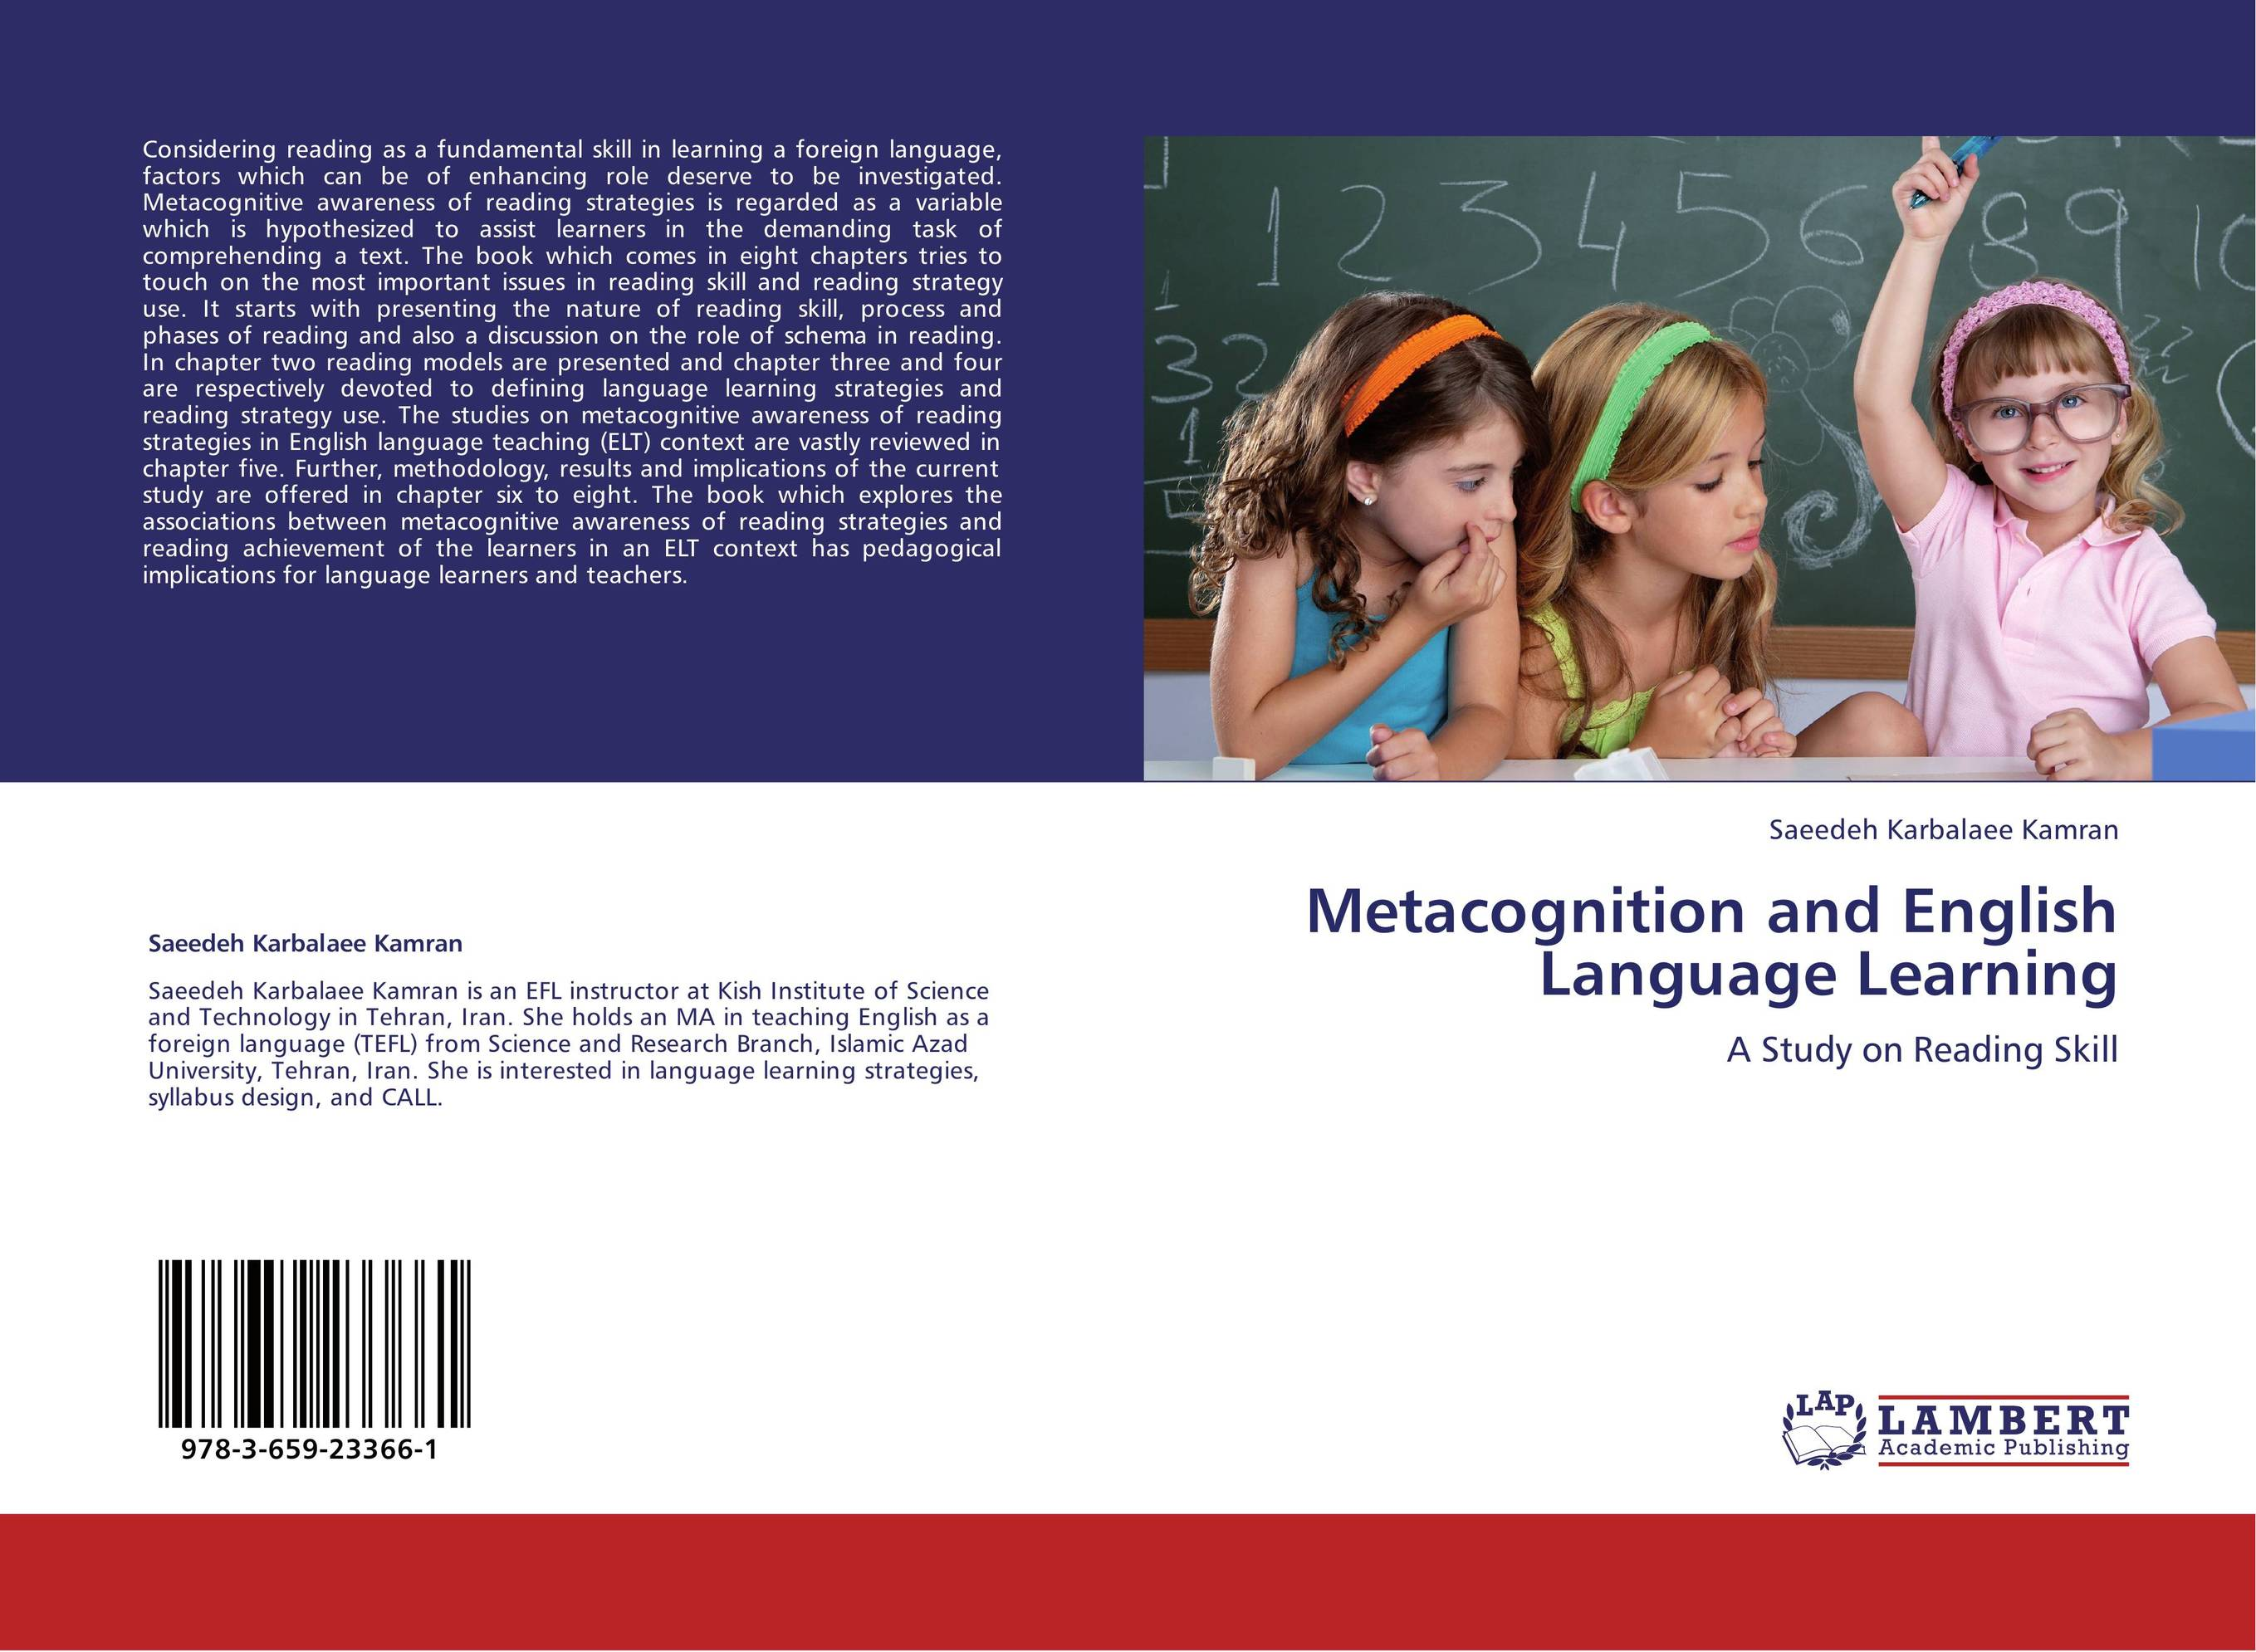 metacognition enhancing metacognitive skills According to metacognitive theories, metacognition includes two domains: knowledge of cognition and regulation of be explicit when teaching metacognitive skills.